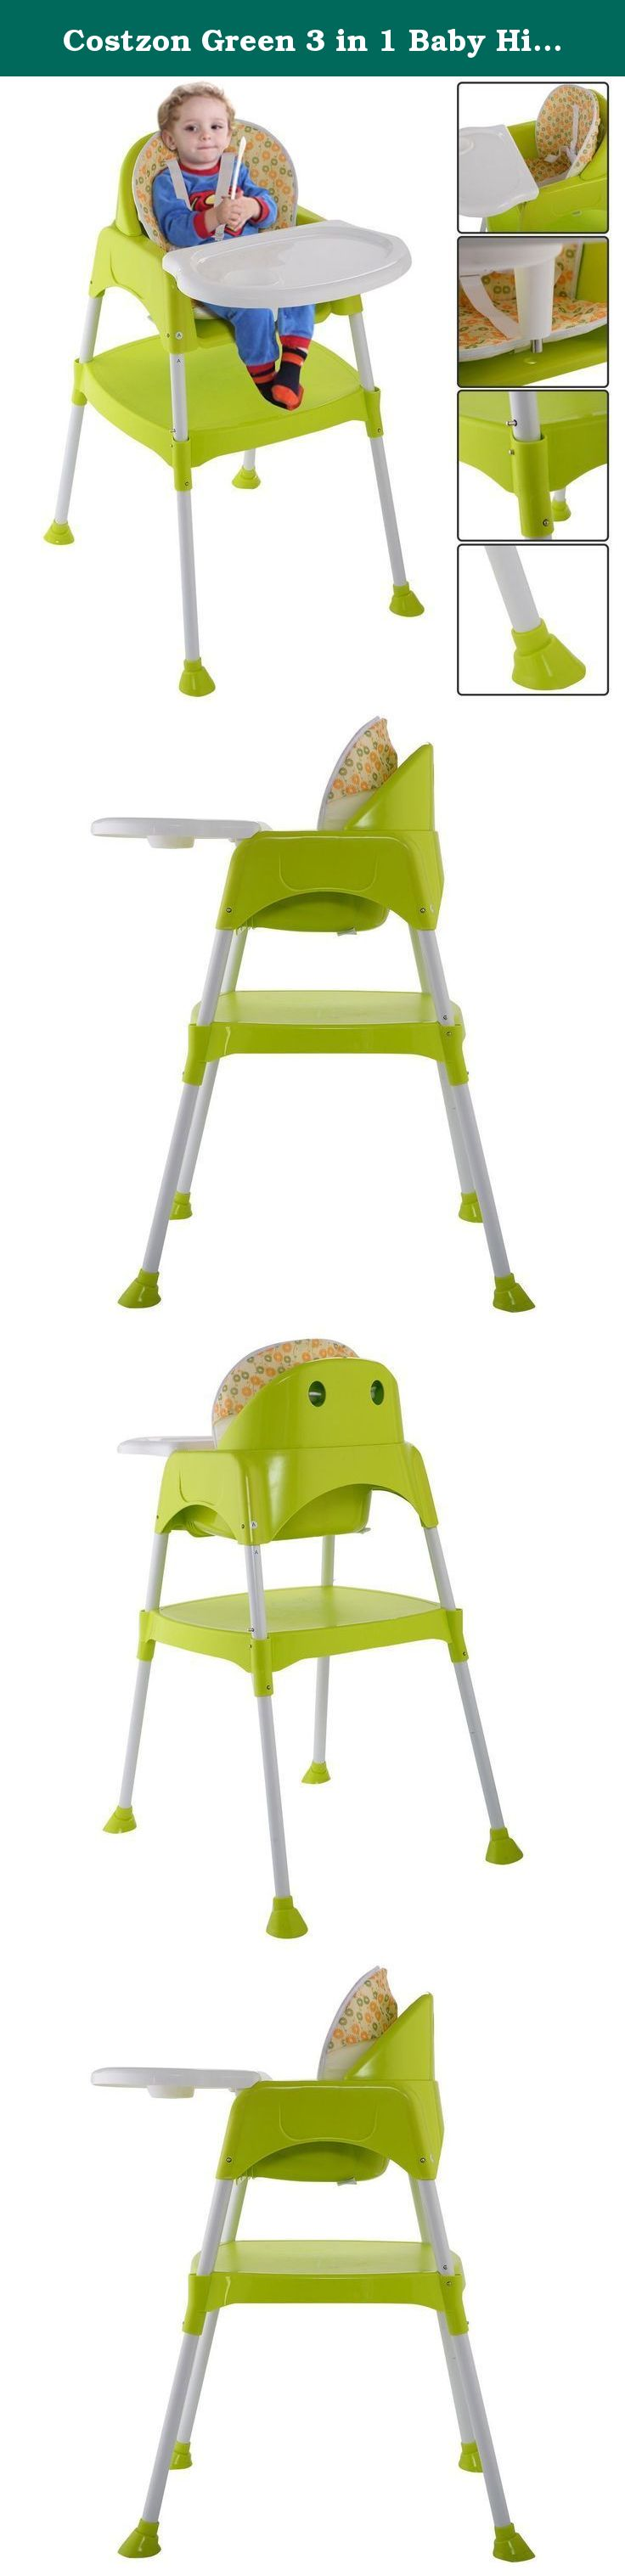 Costzon Green 3 In 1 Baby High Chair Convertible Table Seat Booster Toddler  Feeding Highchair.